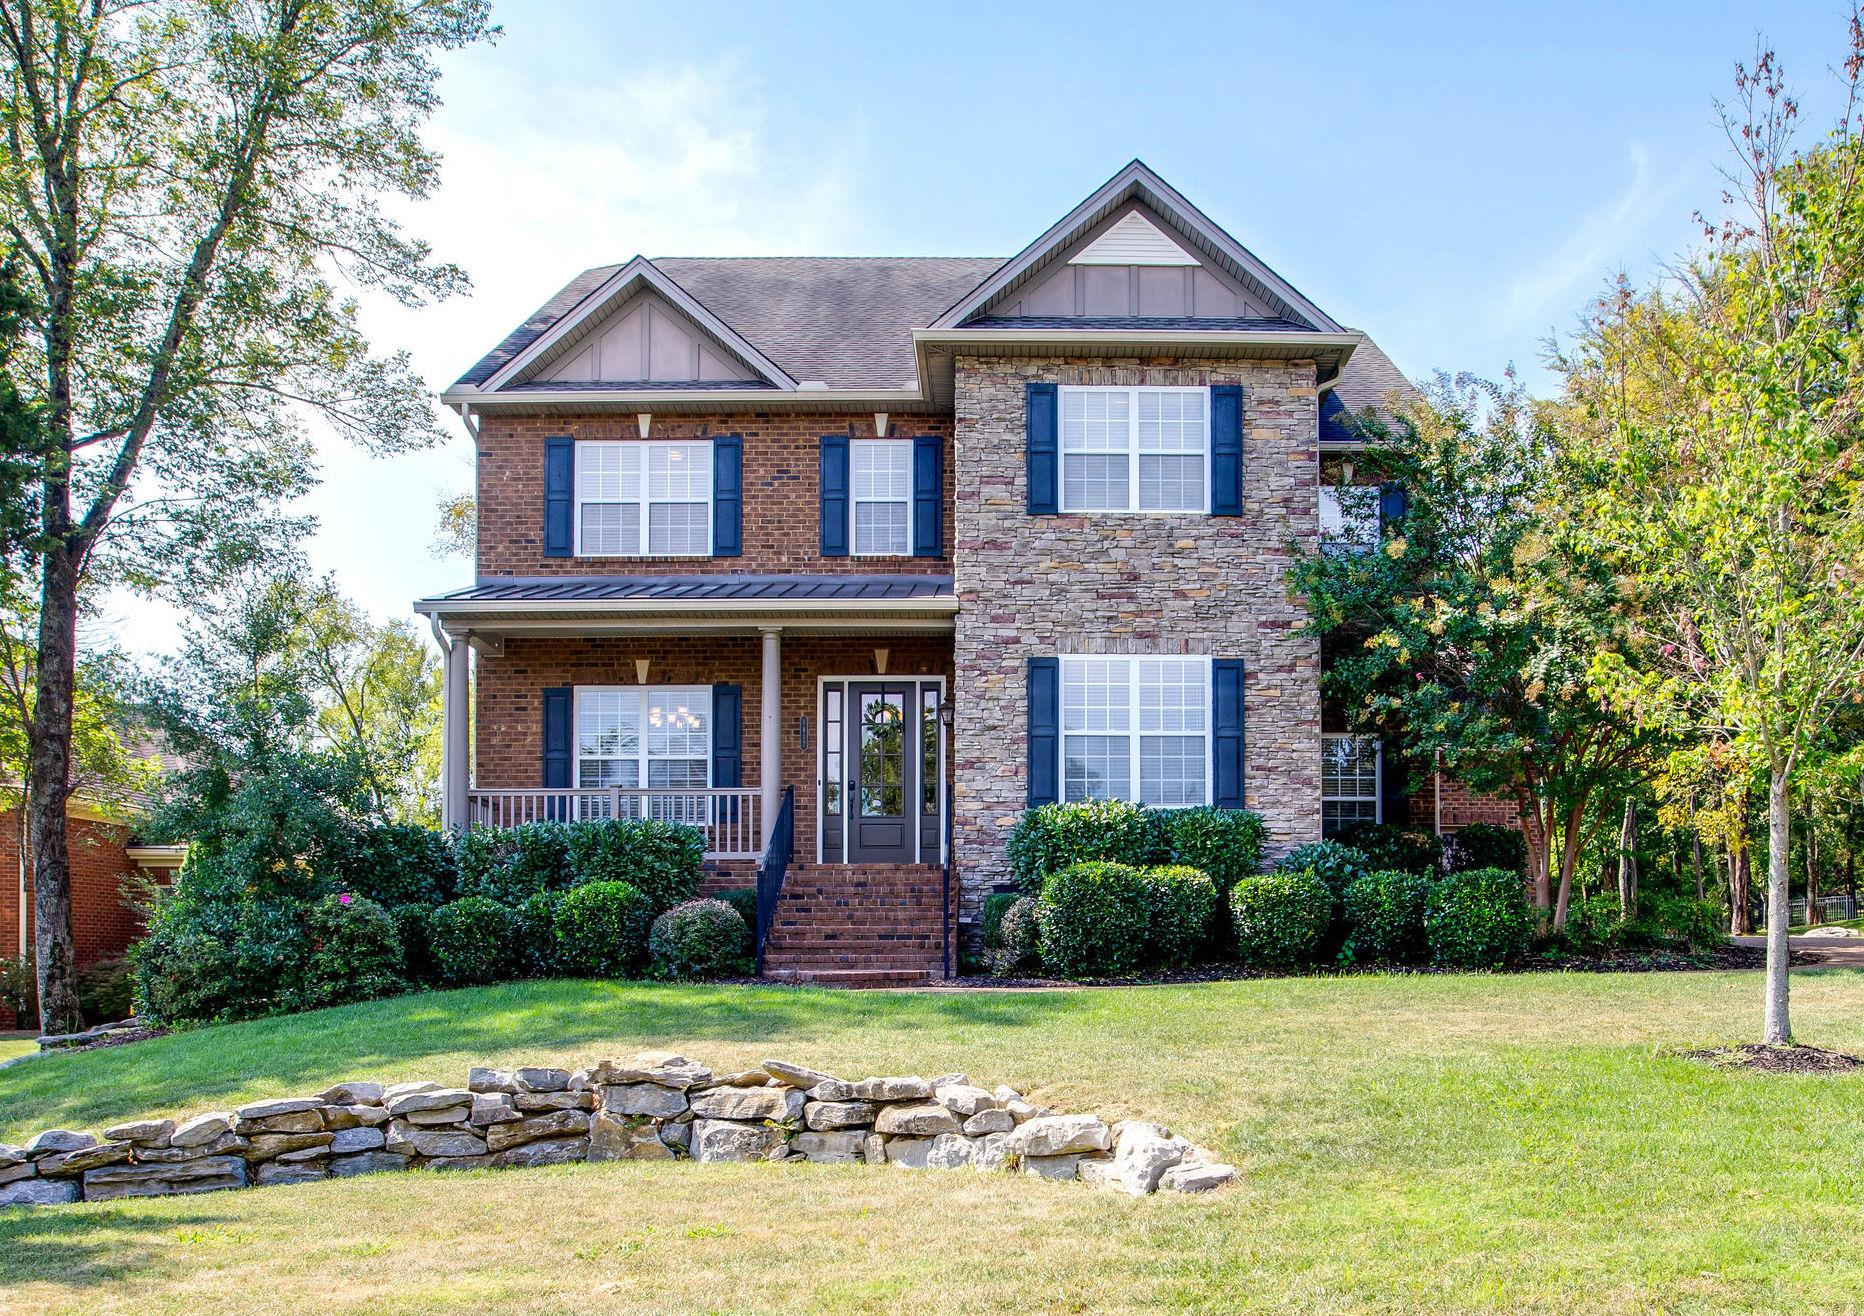 1417 Wolf Creek Dr 37135 - One of Nolensville Homes for Sale